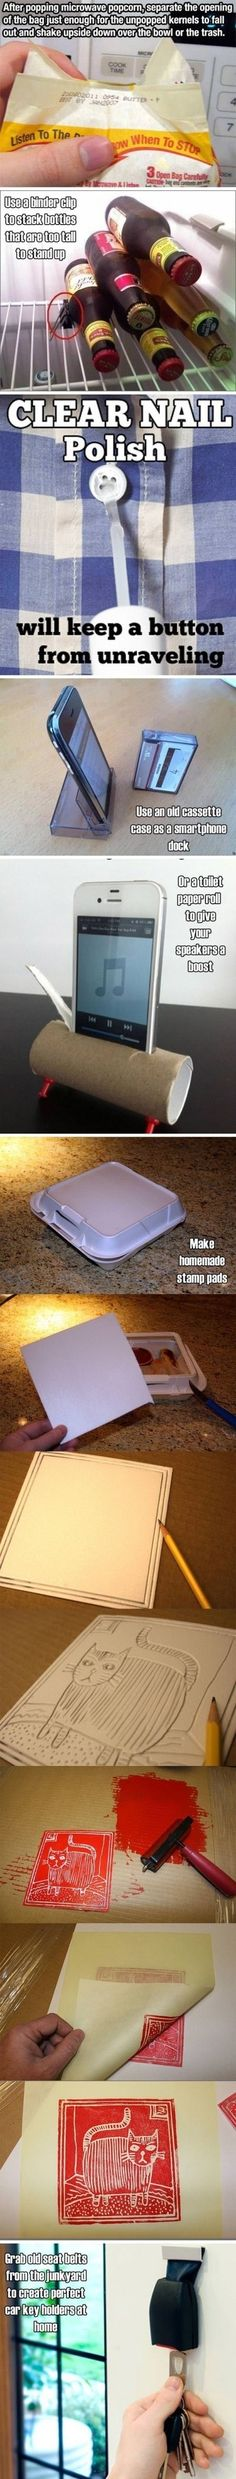 Some cool ideas! // funny pictures - funny photos - funny images - funny pics - funny quotes - #lol #humor #funnypictures